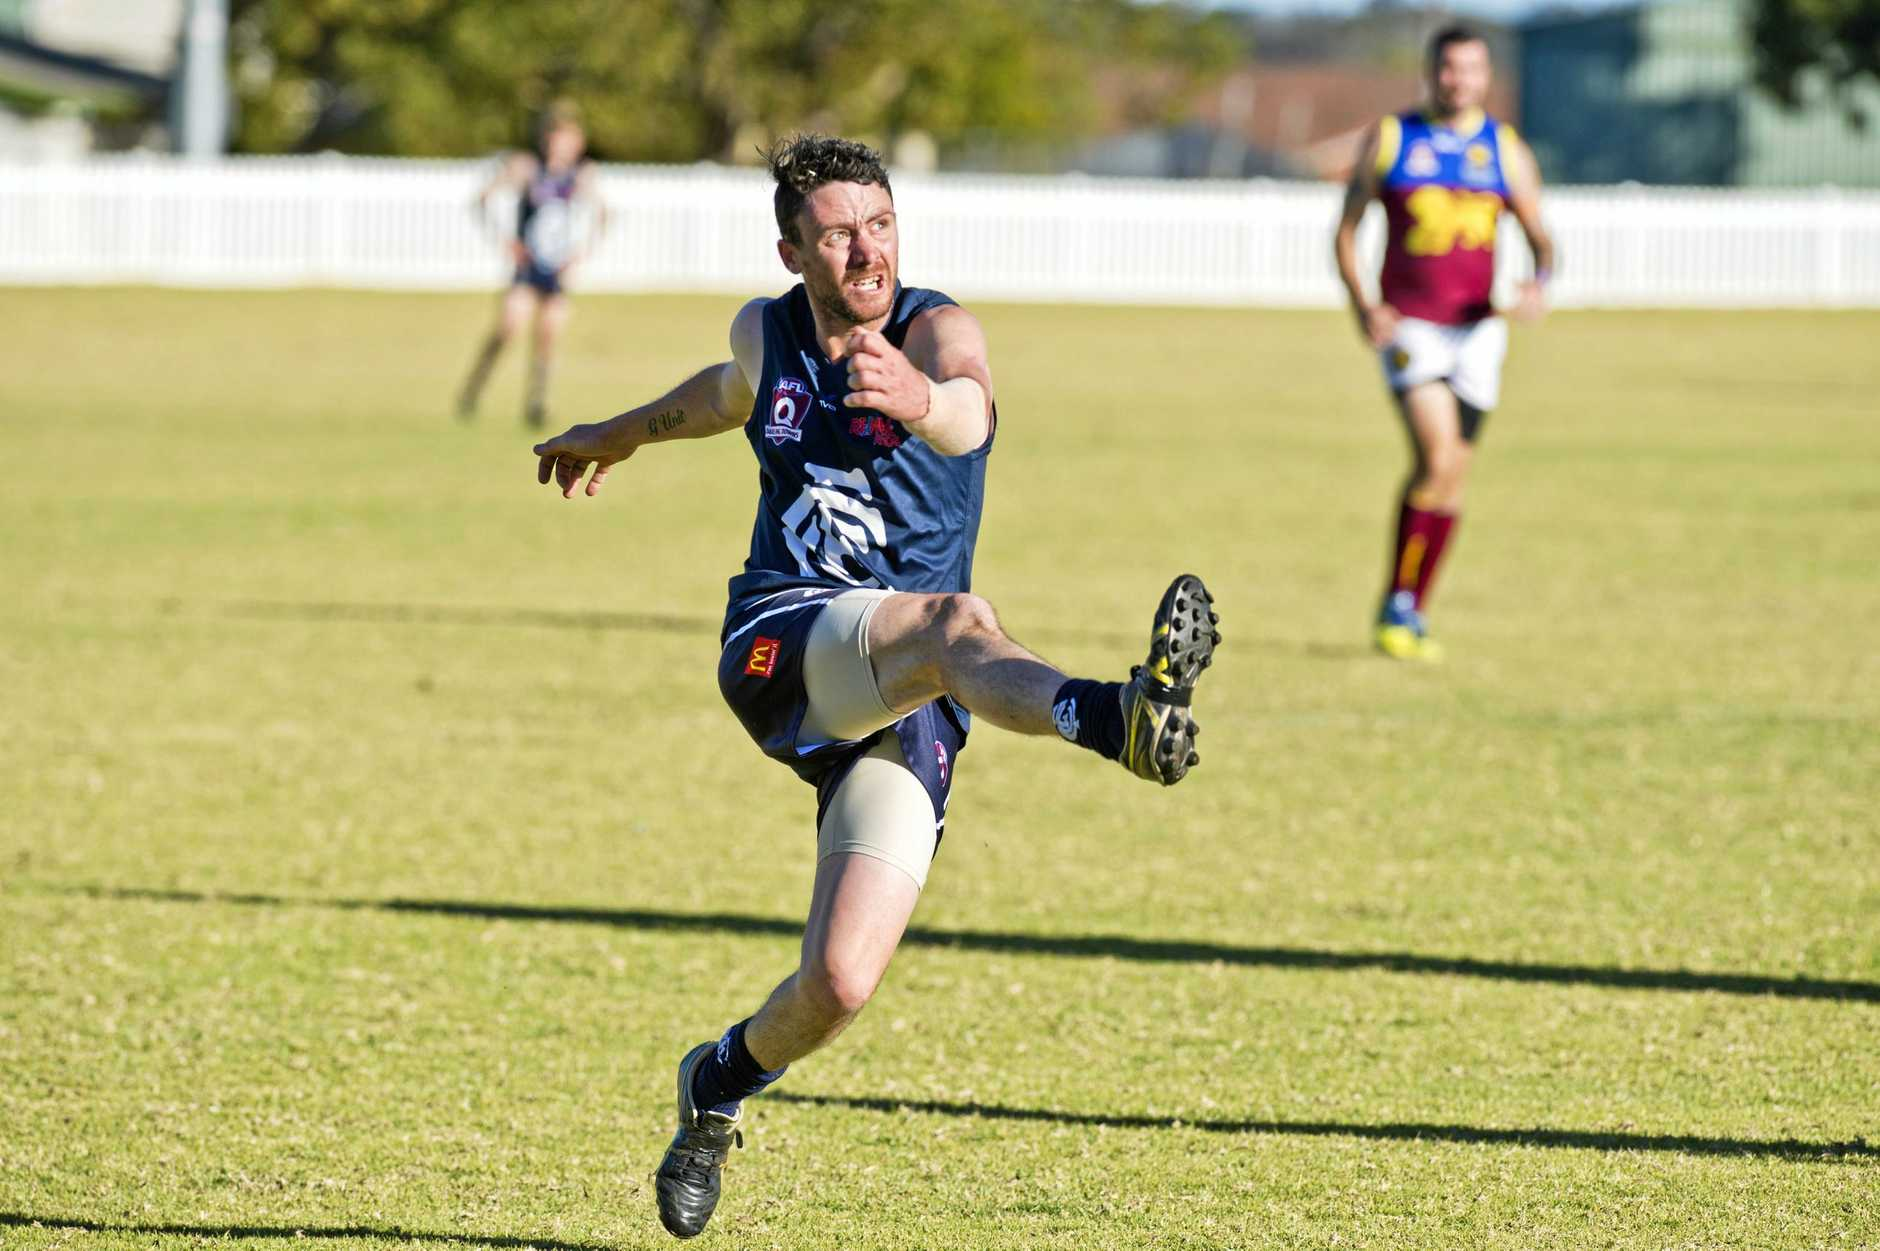 ON THE LINE: Rob Baker joined Coolaroo mid-season as the team looks to come away with a win in their huge clash with Goondiwindi today.